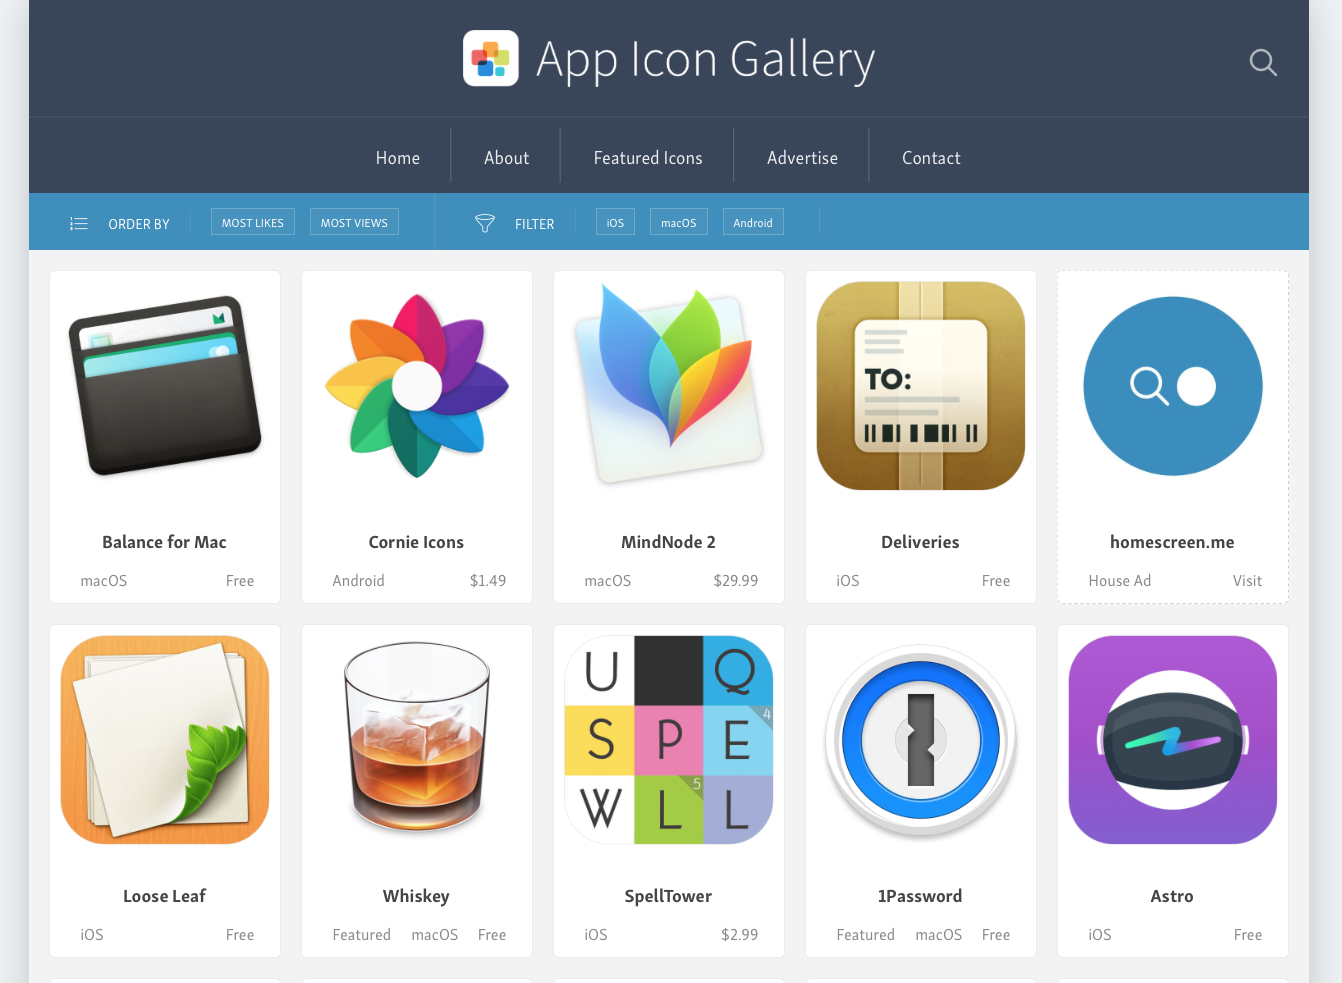 App Icon Gallery Screenshot